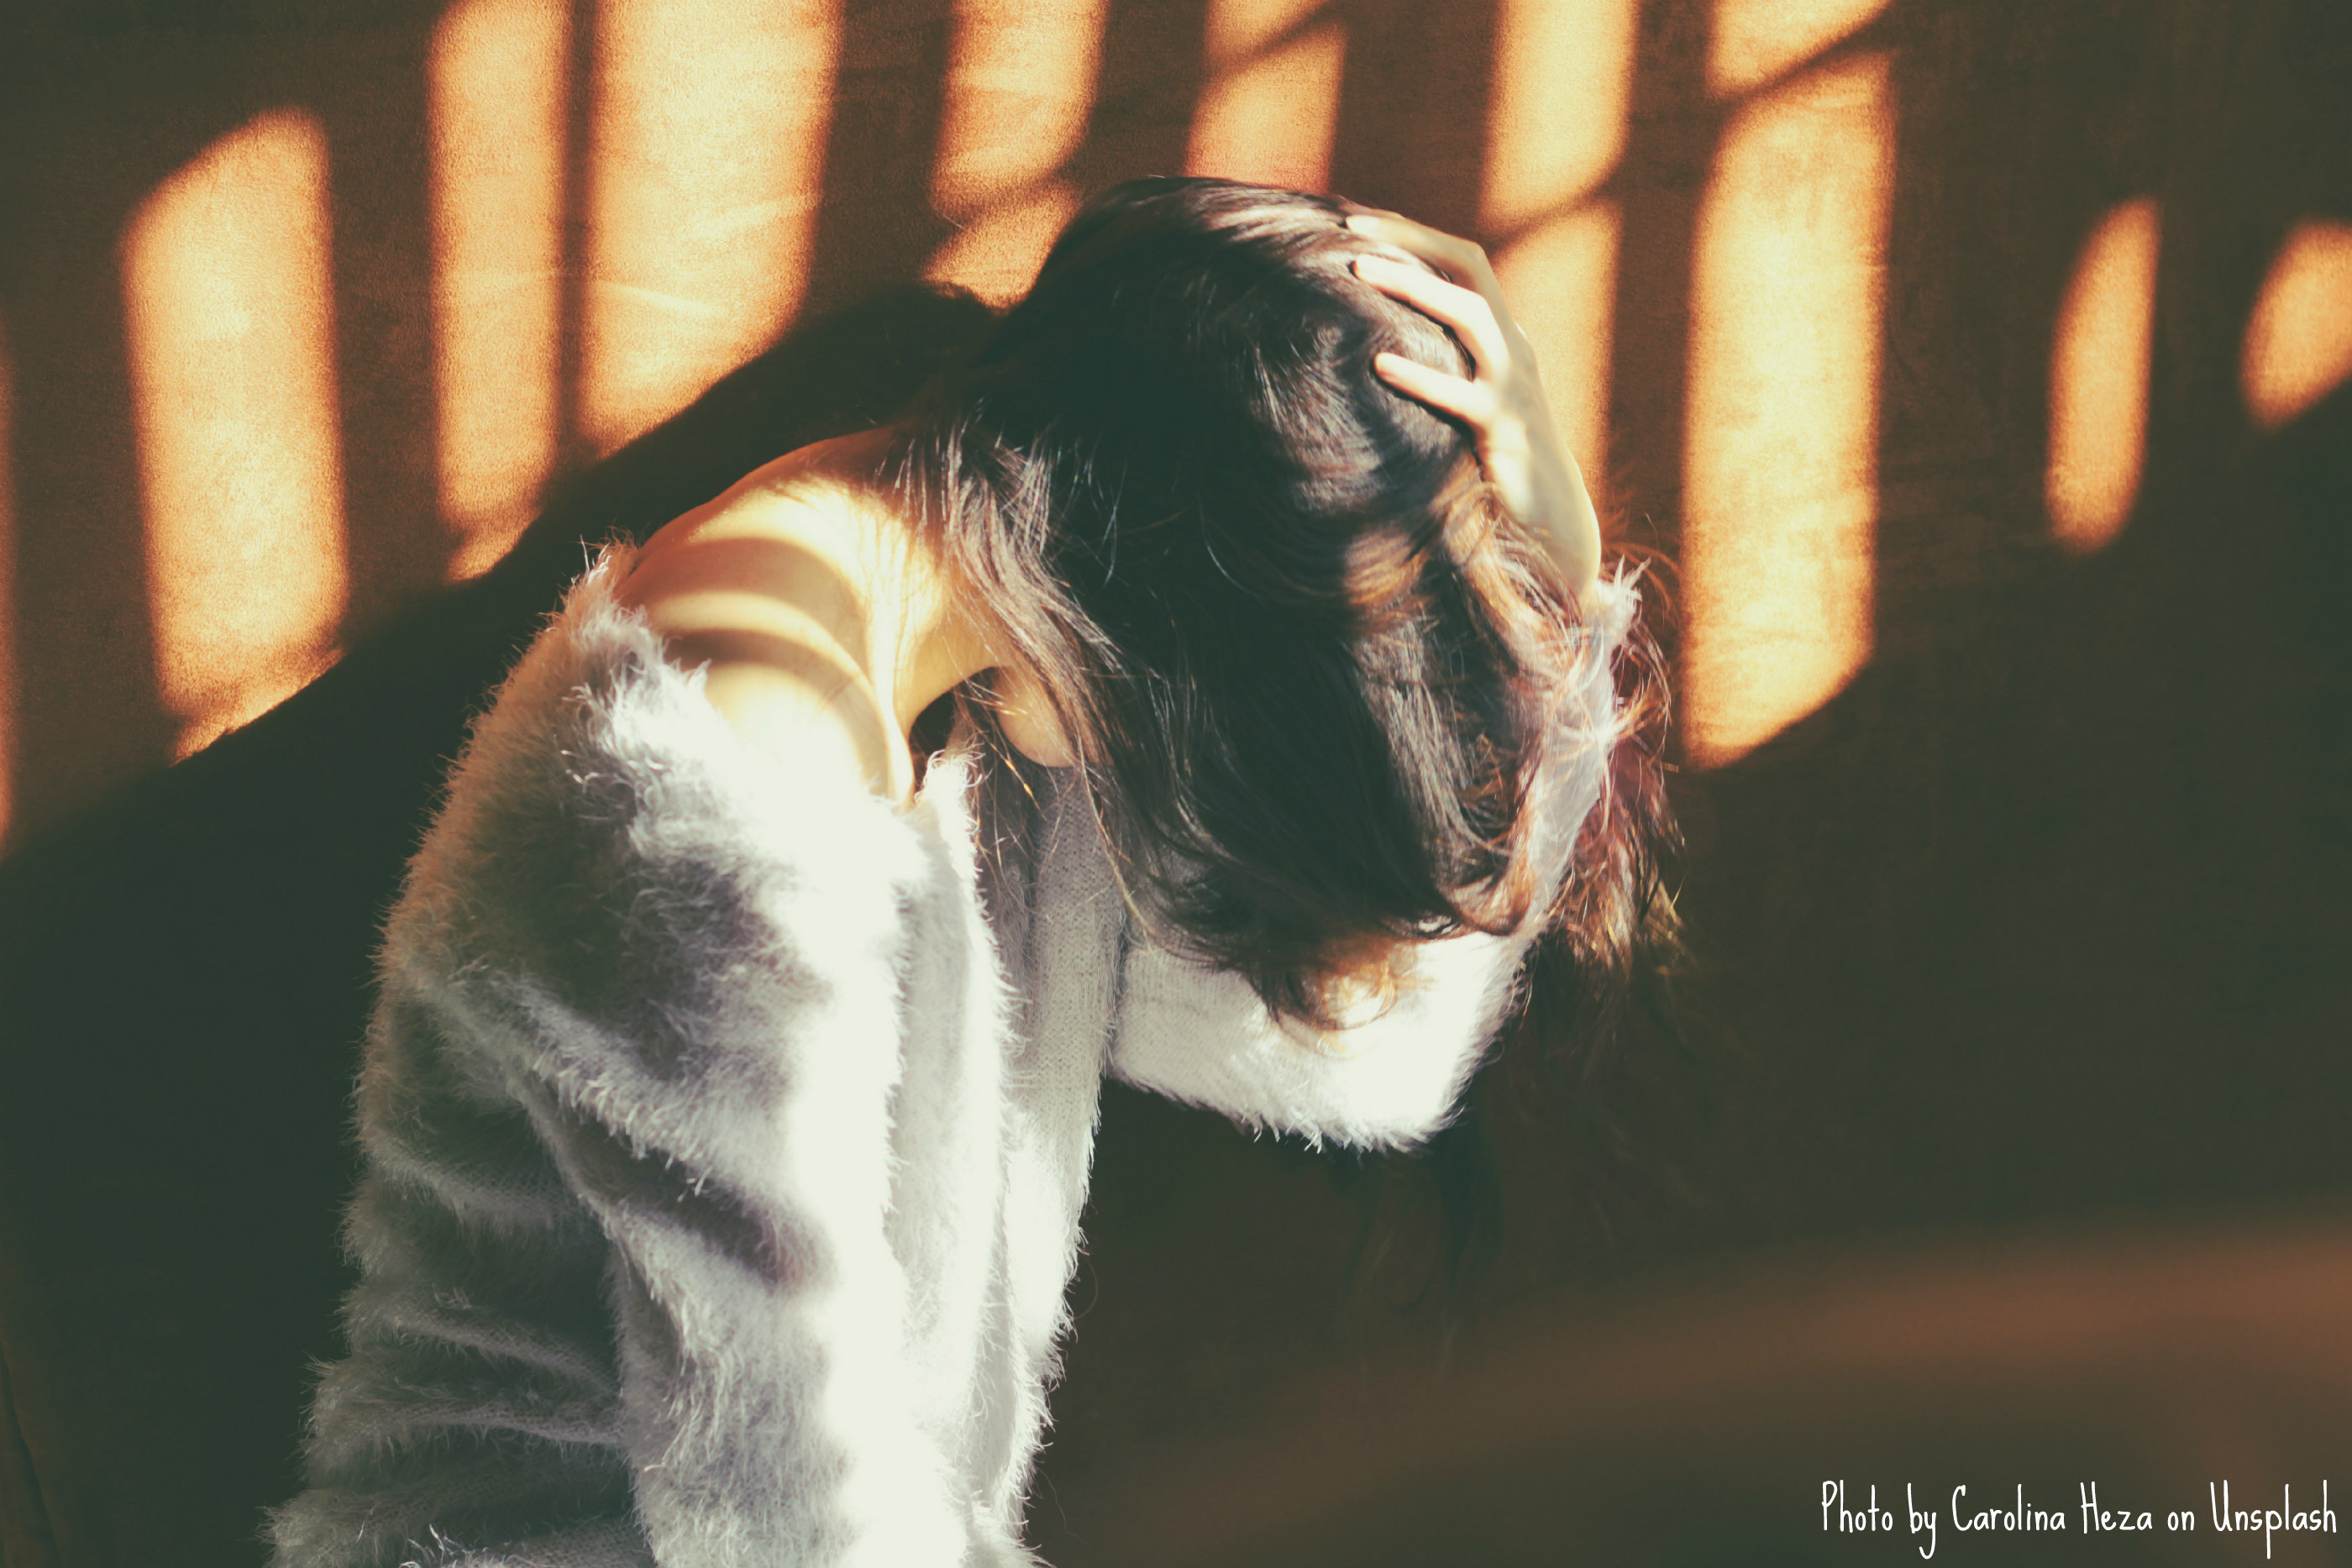 A thin person with long dark hair wearing a pale gray fuzzy top has their head buried in their left hand. The photo is a side profile of them from their right, and sunlight beams through an unseen barrier, casting shadows on them and the terra-cotta looking wall behind them.